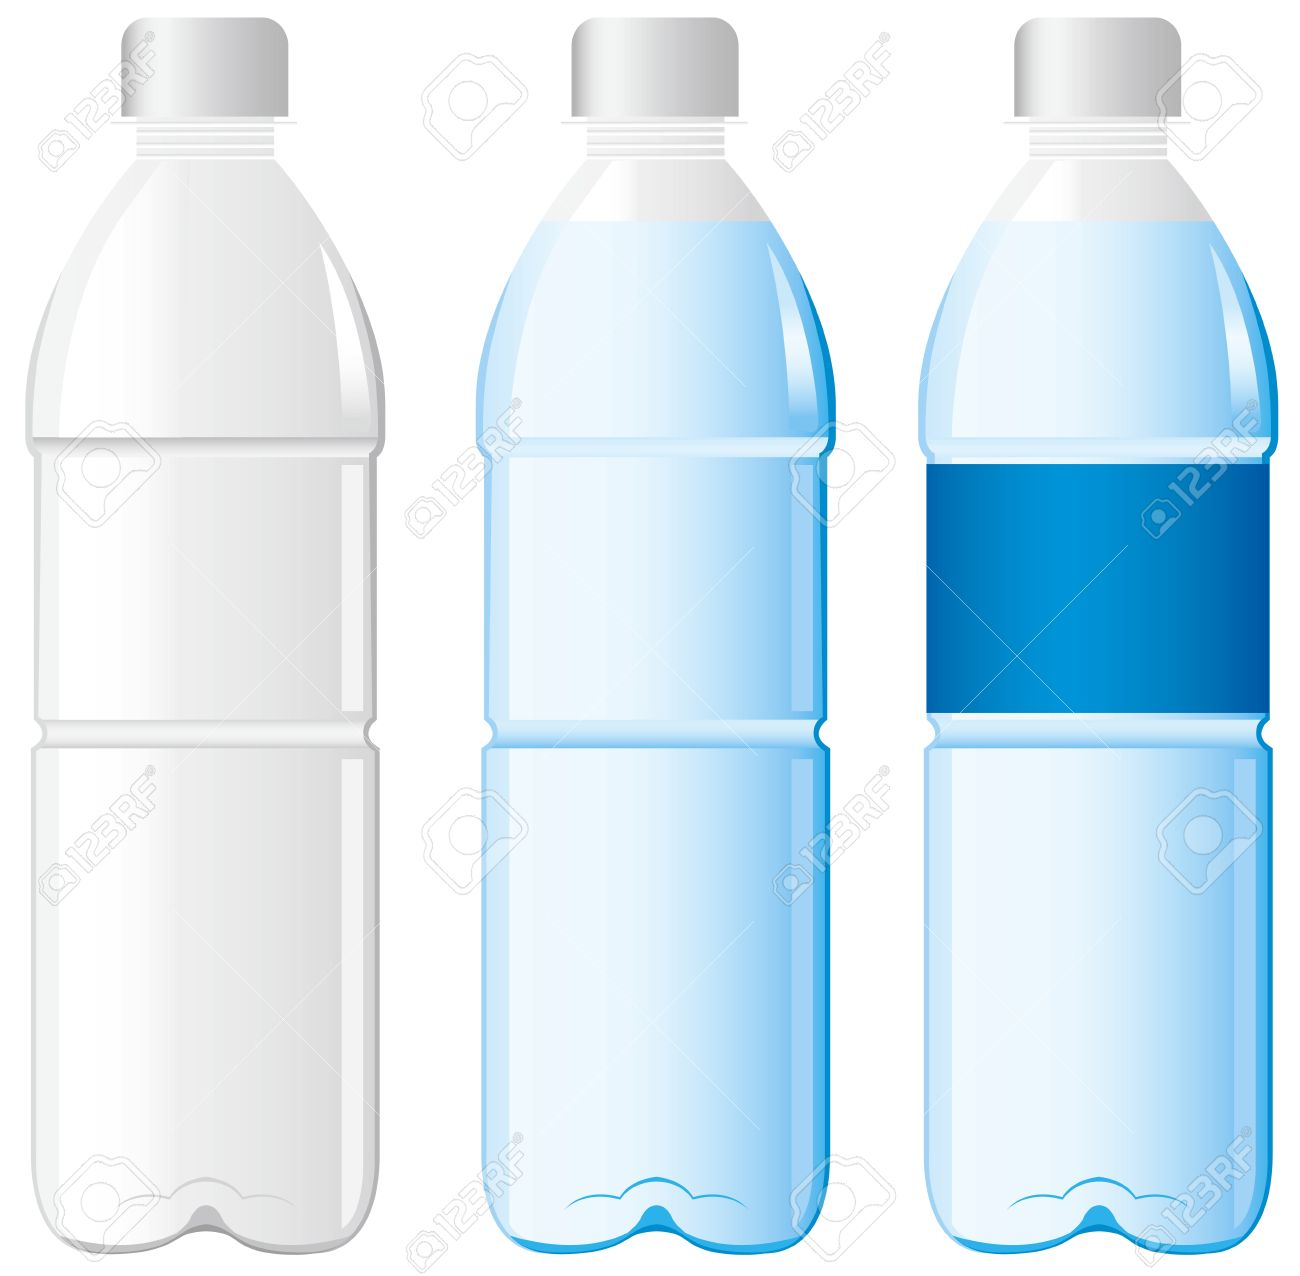 Plastic bottles clipart - Clipground